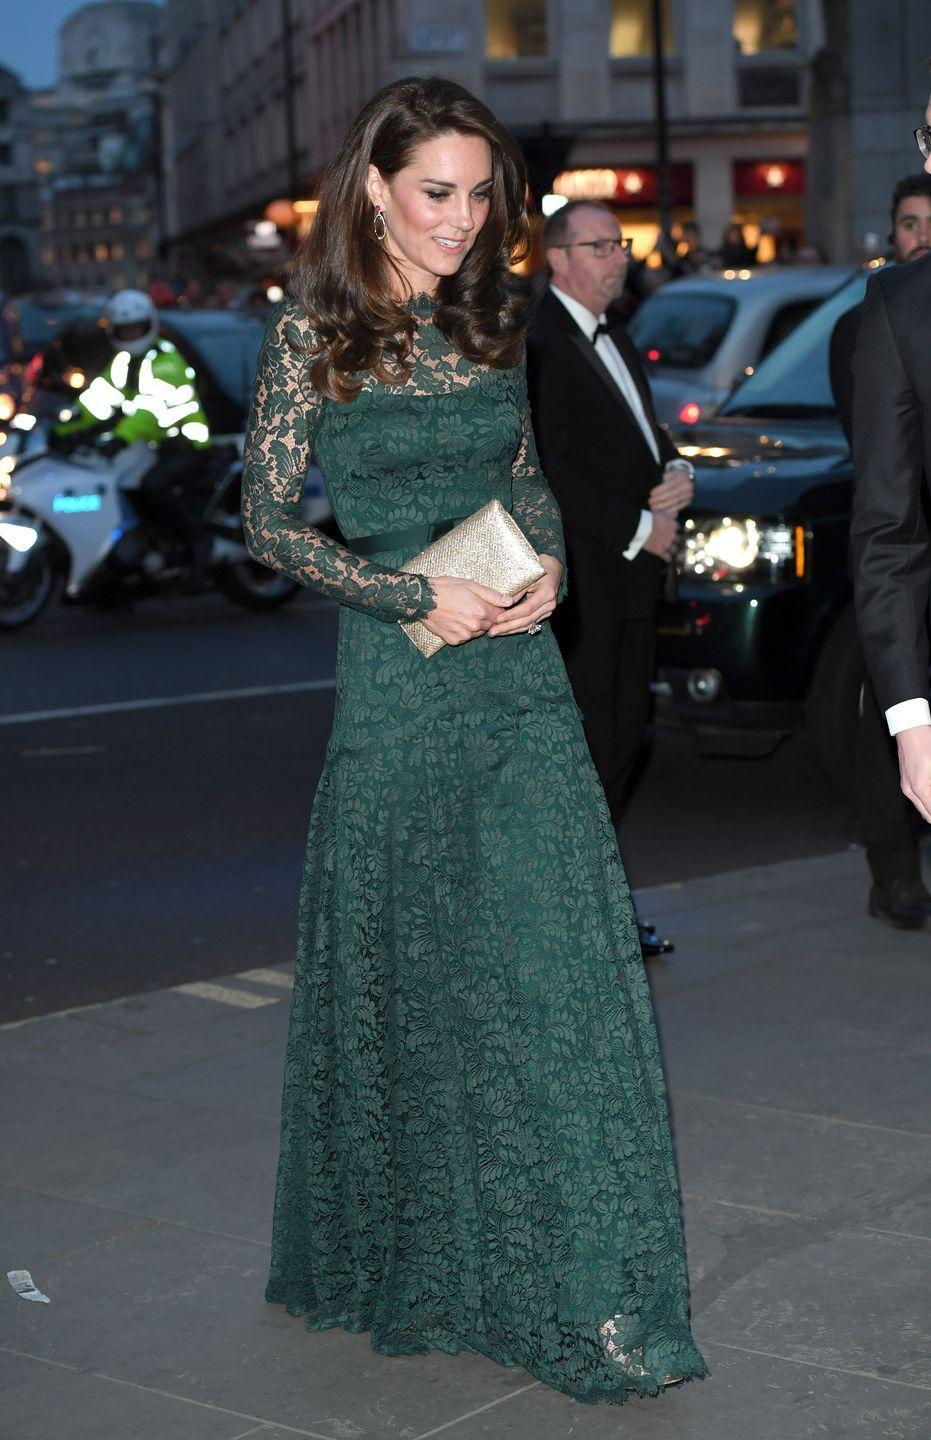 <p>Arriving at the National Portrait Gallery's 2017 Portrait Gala, one of the most anticipated events of the year, Duchess Kate chose a pine green, floor-length gown by Temperley London. She paired her slim-fitting, lace dress with a gold clutch from Wilbur & Gussie and gold heels by Jimmy Choo.</p>